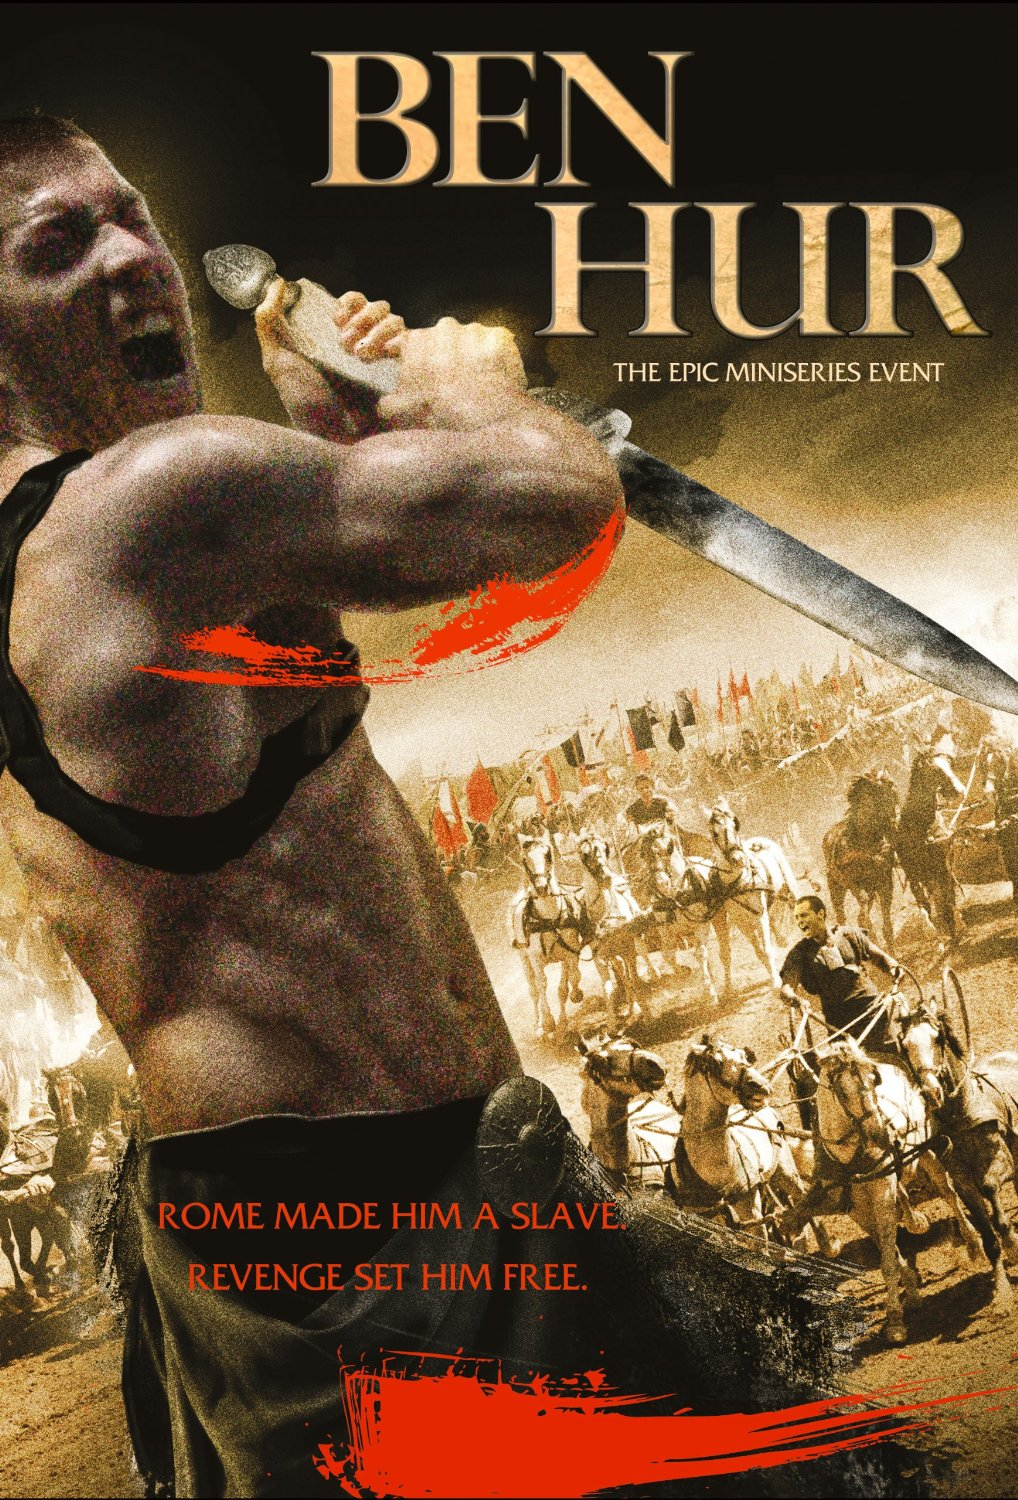 Ben Hur (DVD, 2013) The Epic Miniseries Event